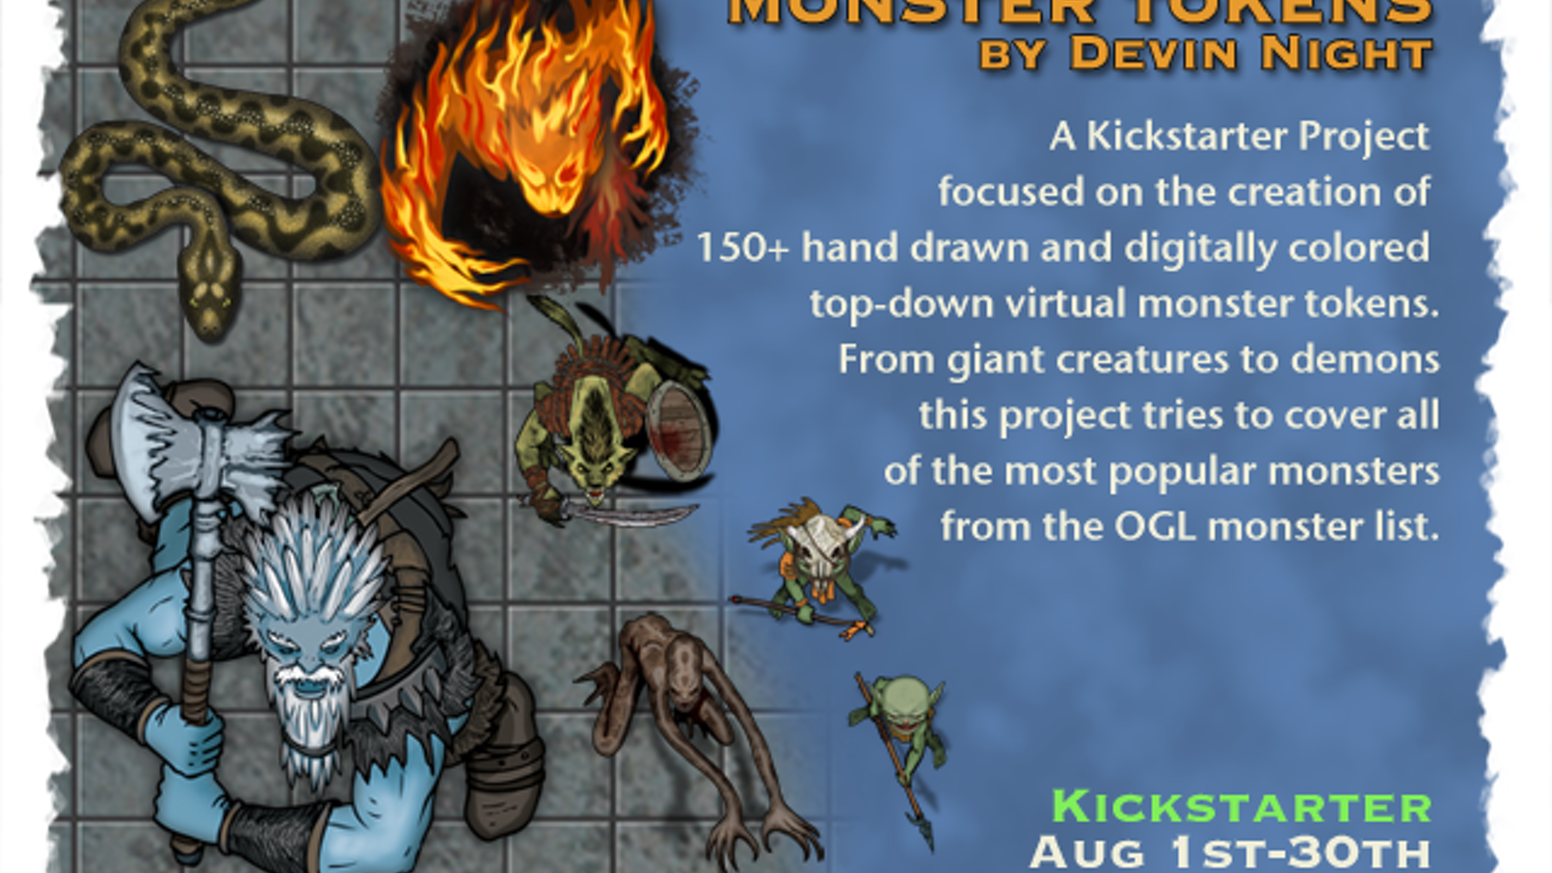 Hand drawn and colored by Devin Night and Nell Bailey. These tokens are overhead monsters from the OGL/SRD list of fantasy monsters.